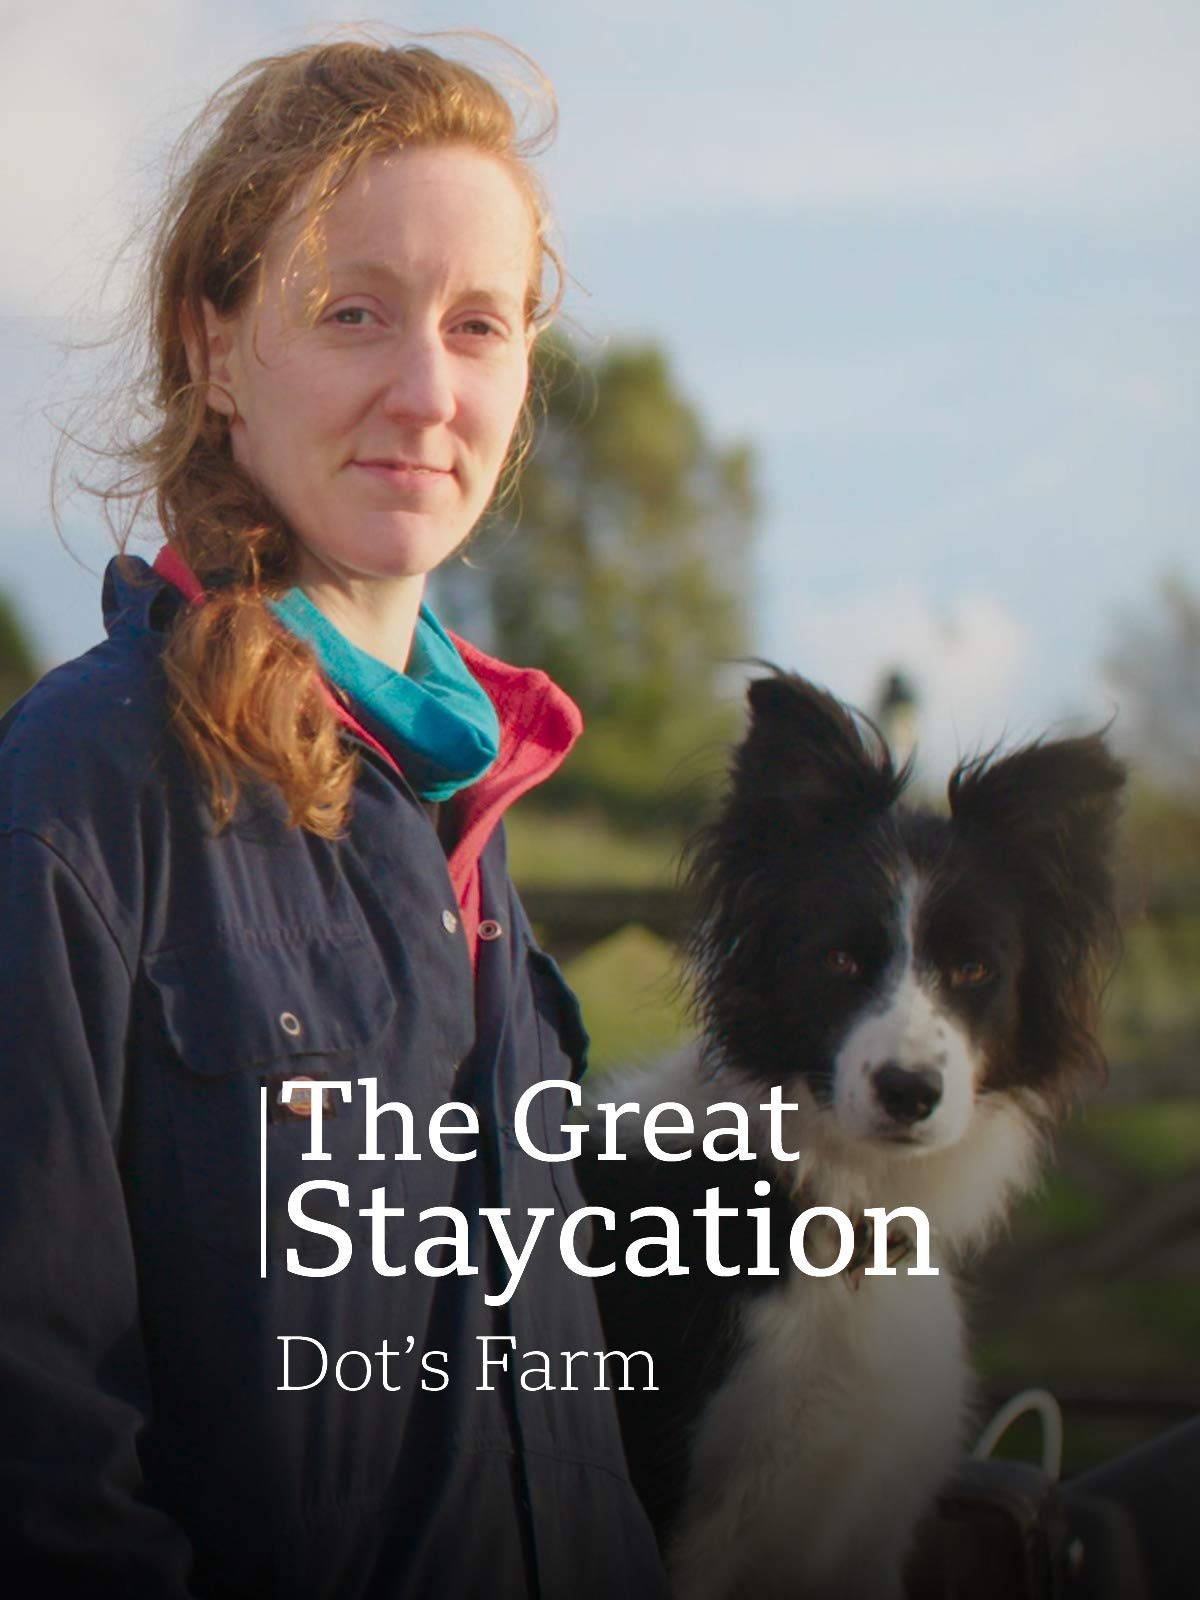 The Great Staycation: Dot's Farm